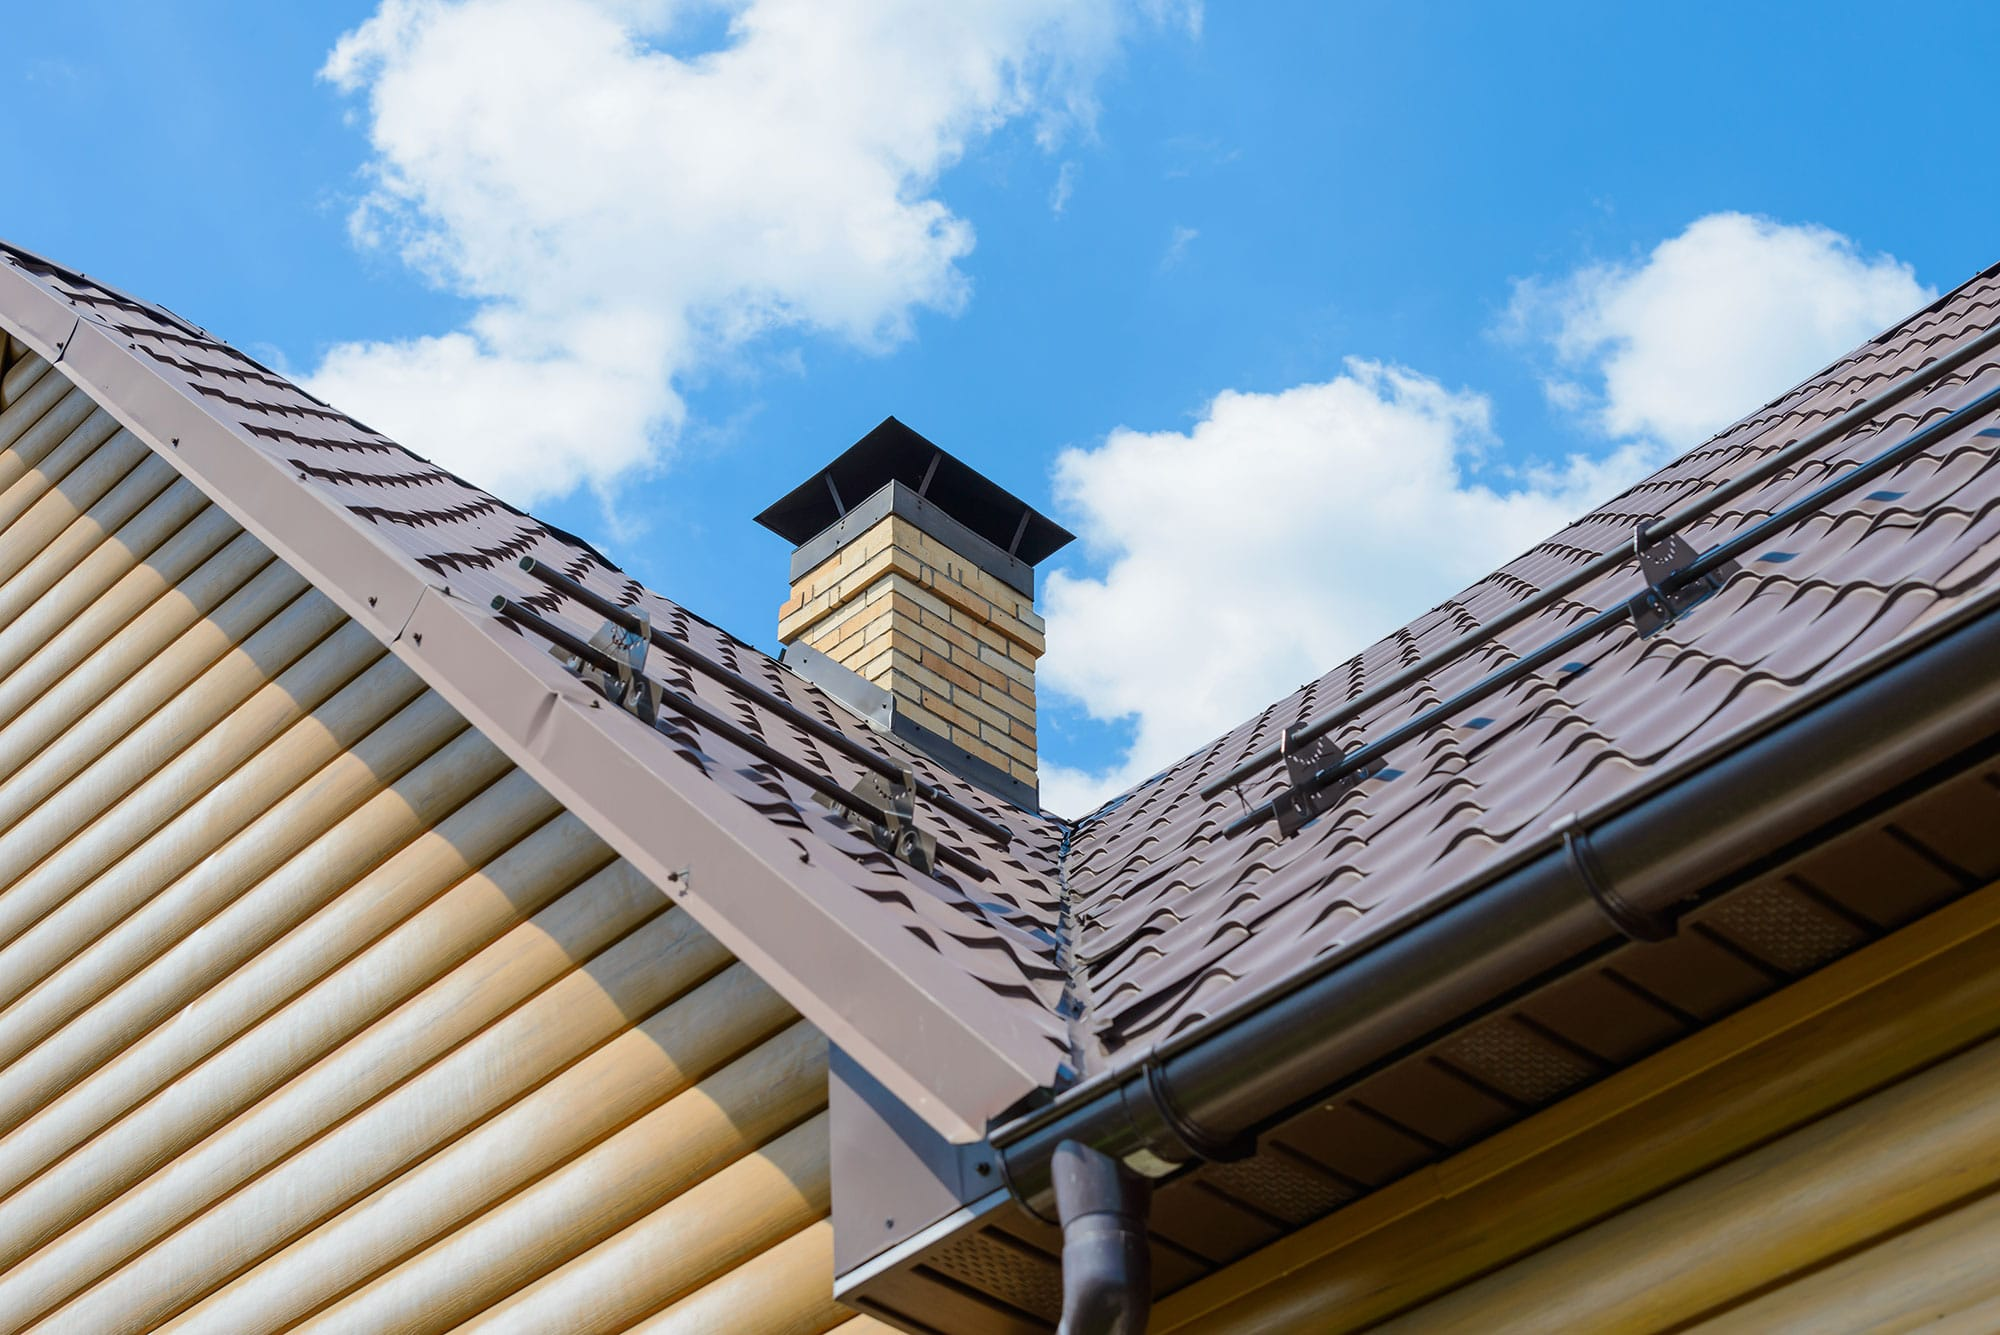 Perspective of roof and gutters